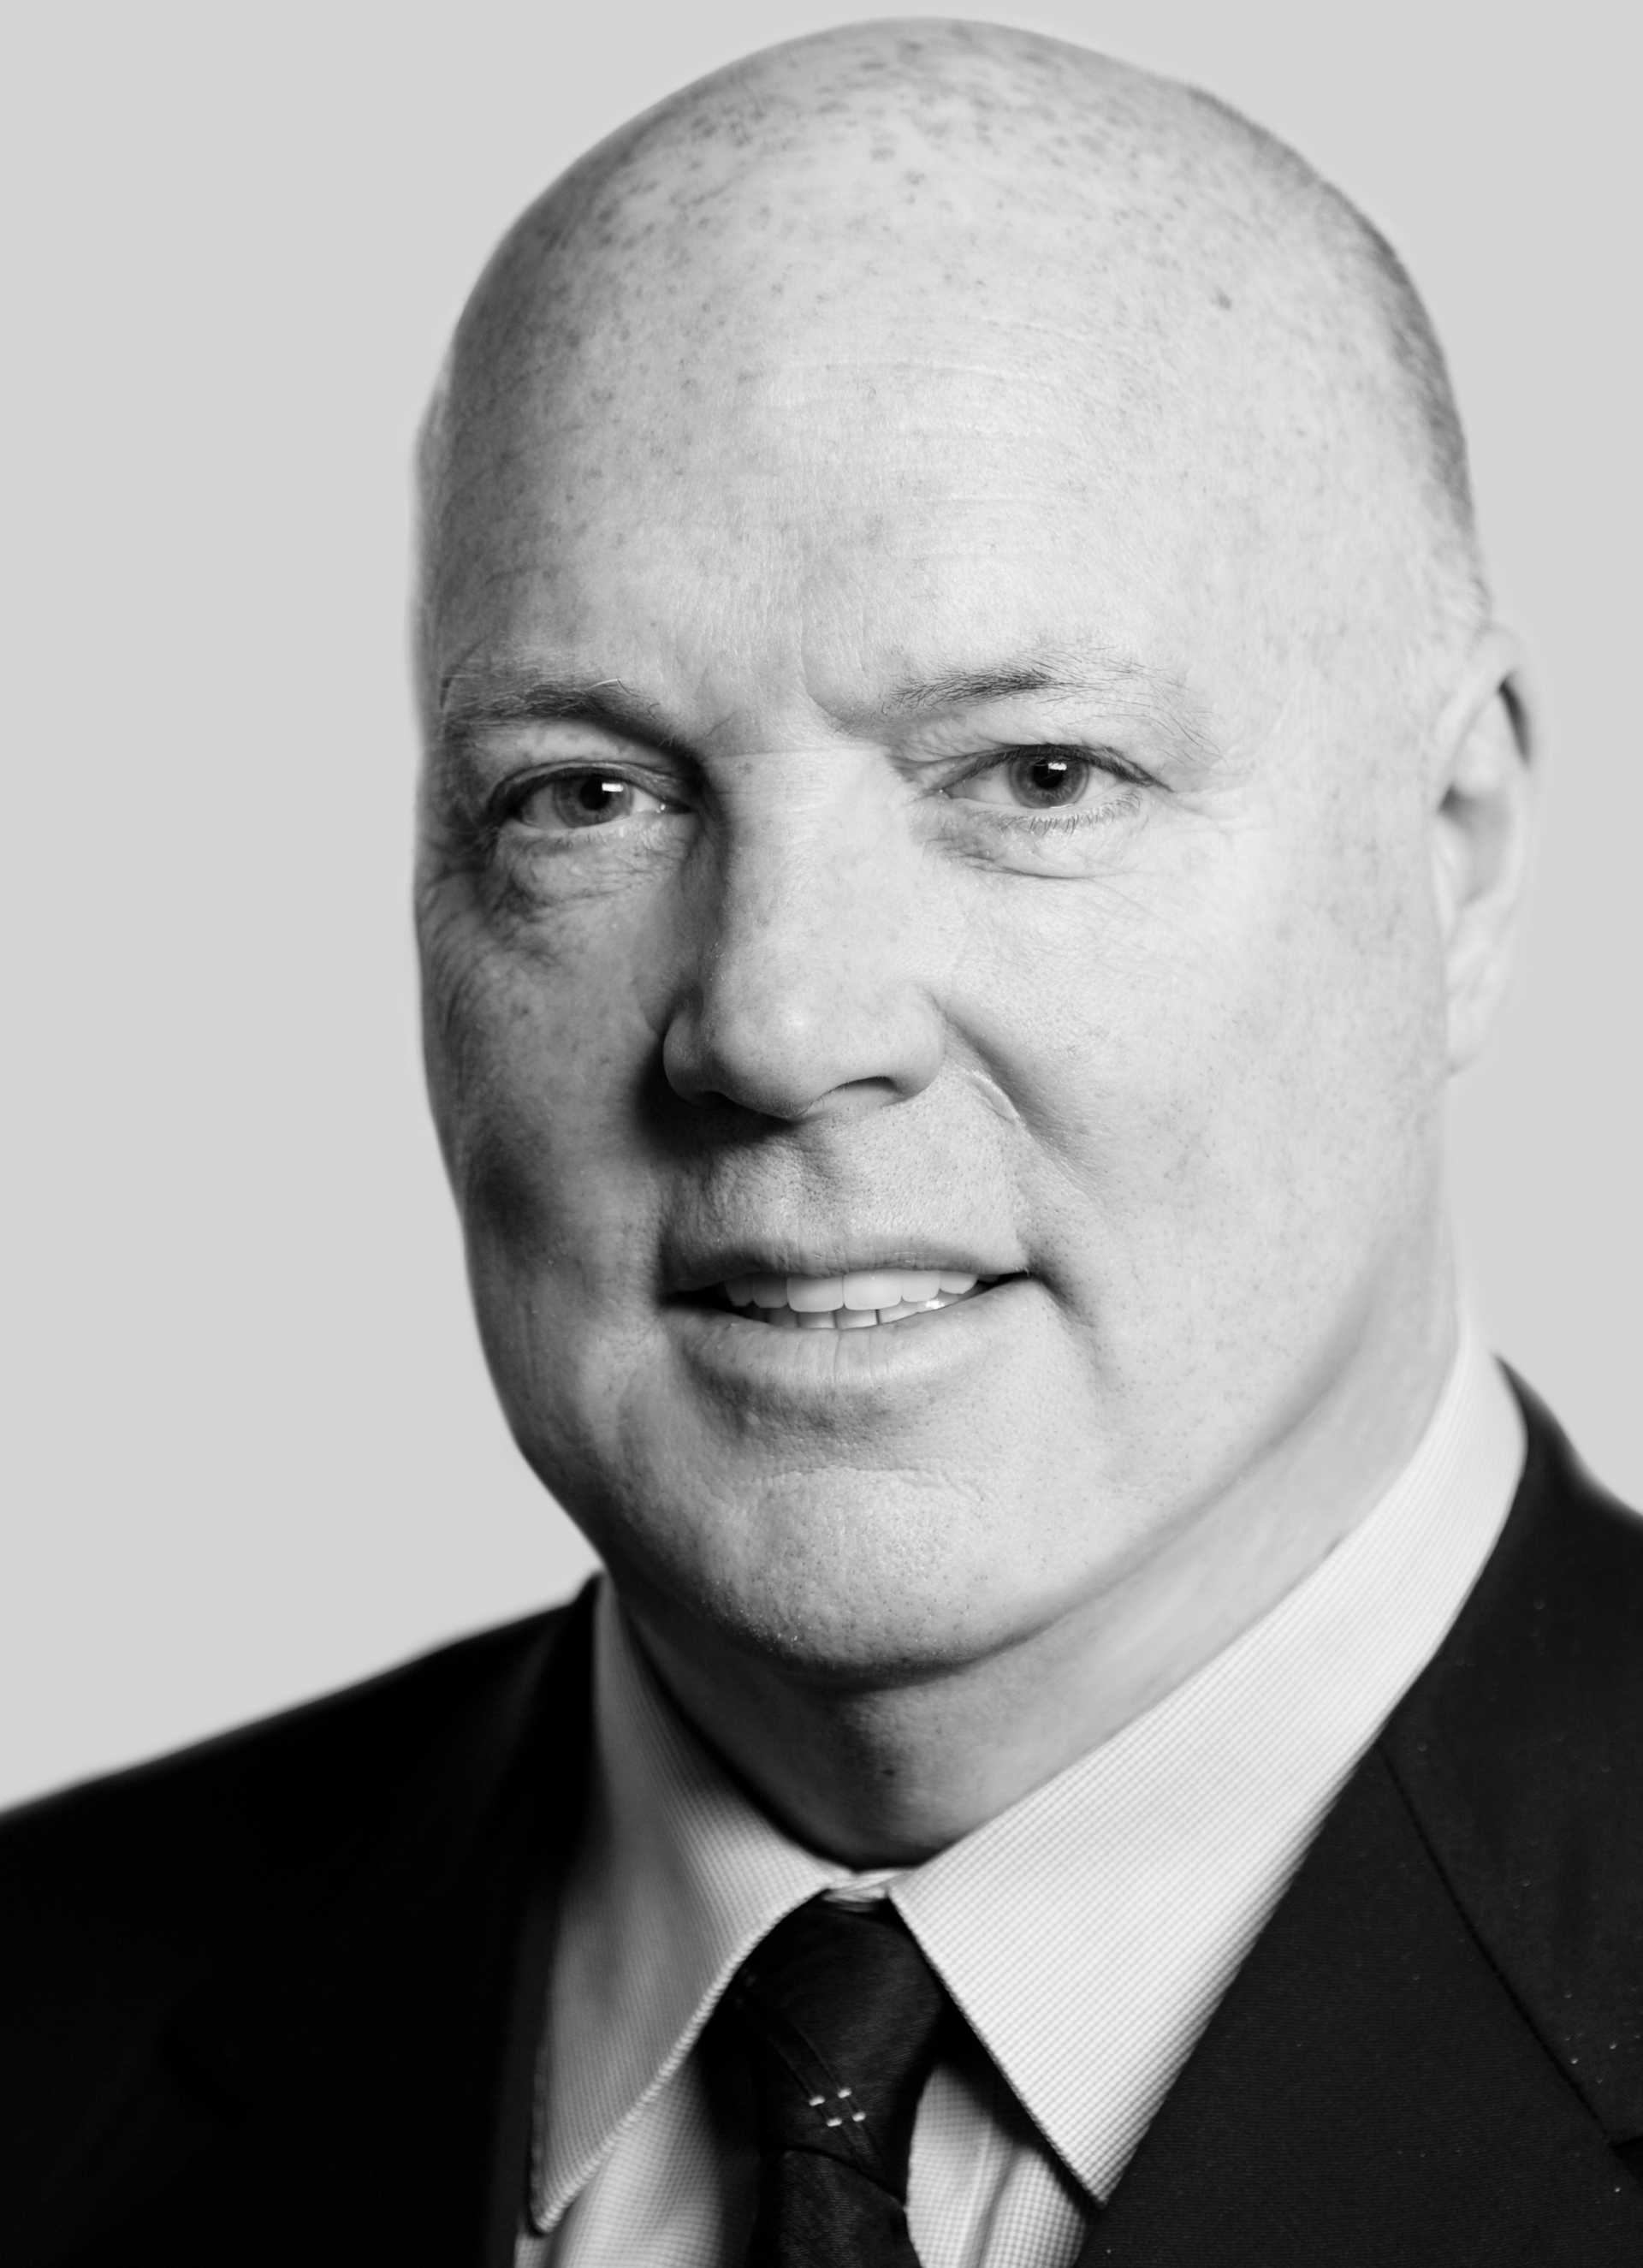 Jim McColl - Clyde Blowers - National Investment Bank for Britain